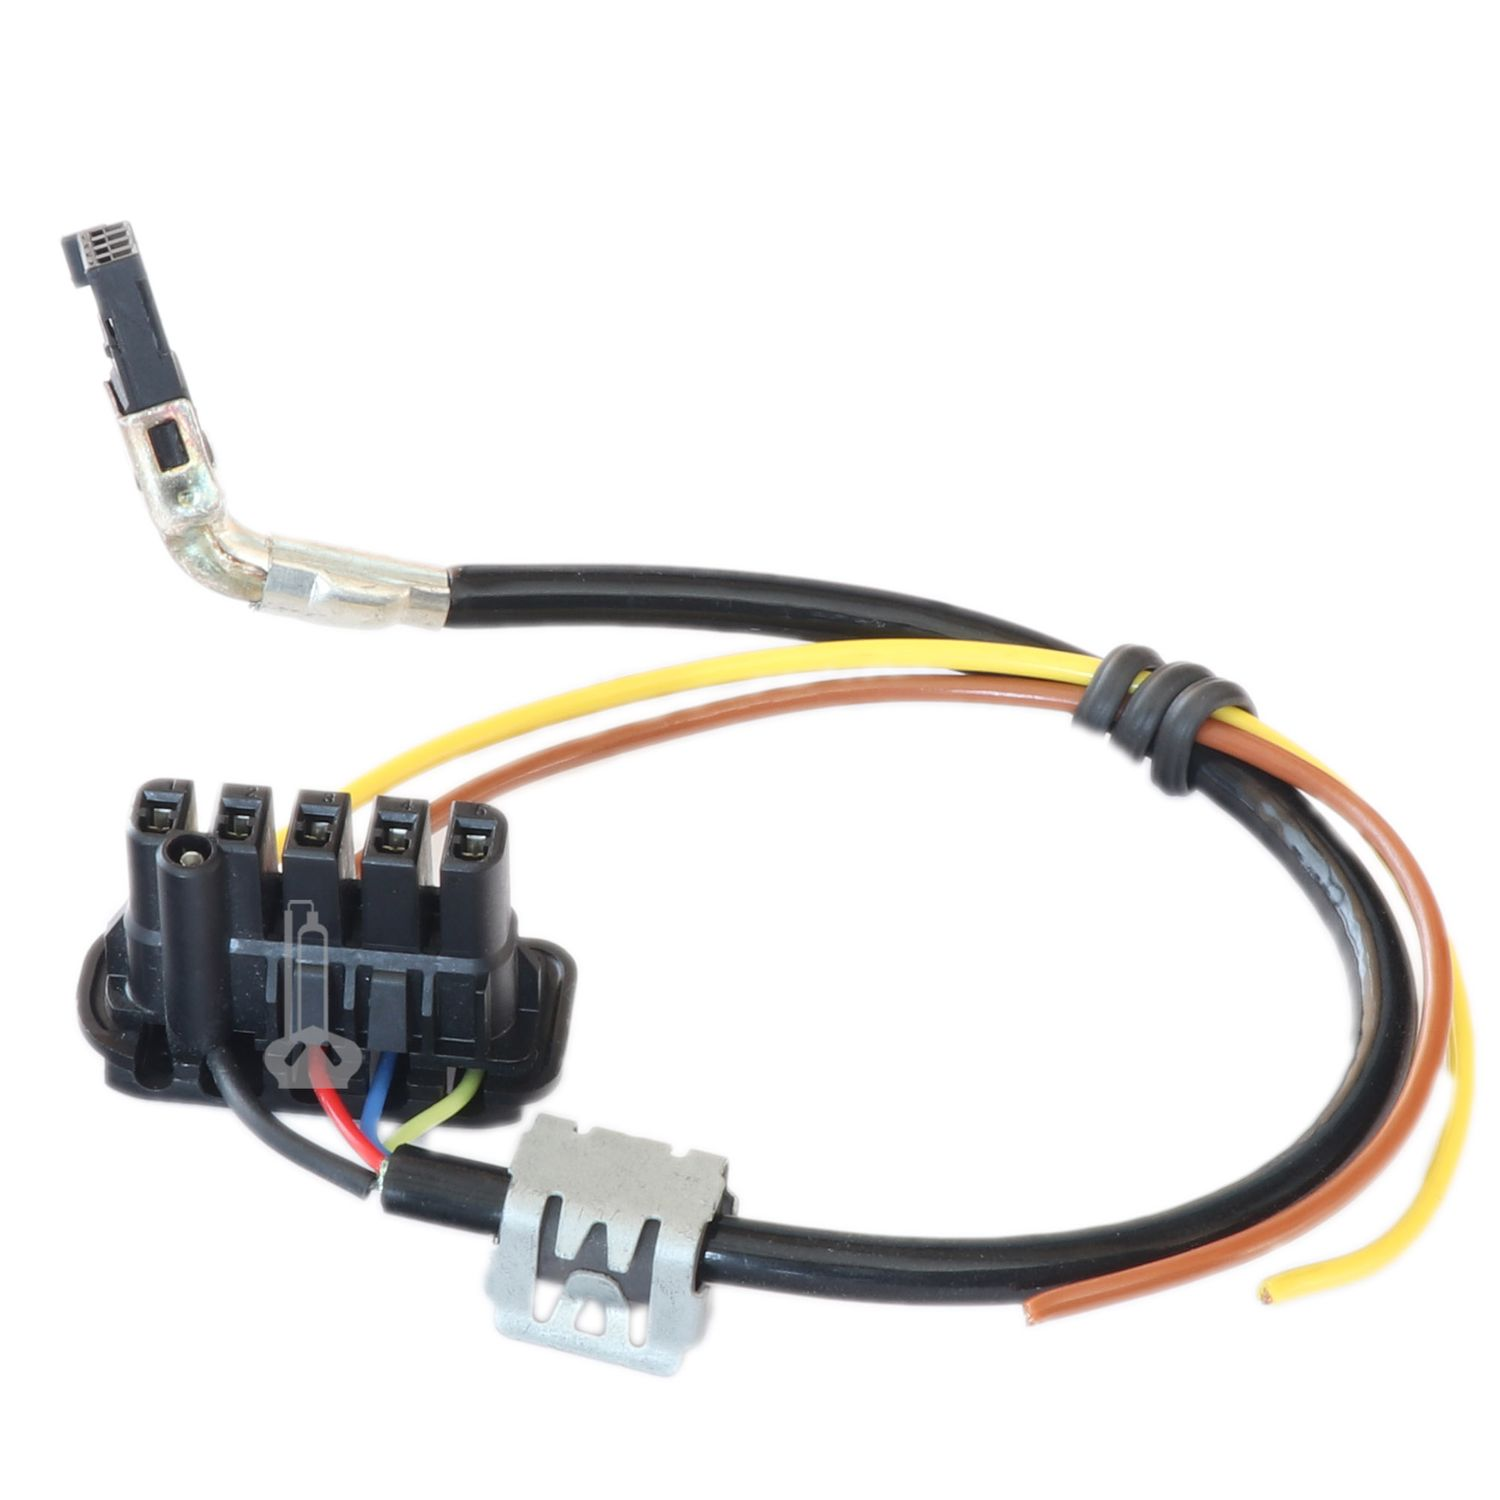 Replacement cable for HELLA 5DV 008 290 xenon headlight control unit